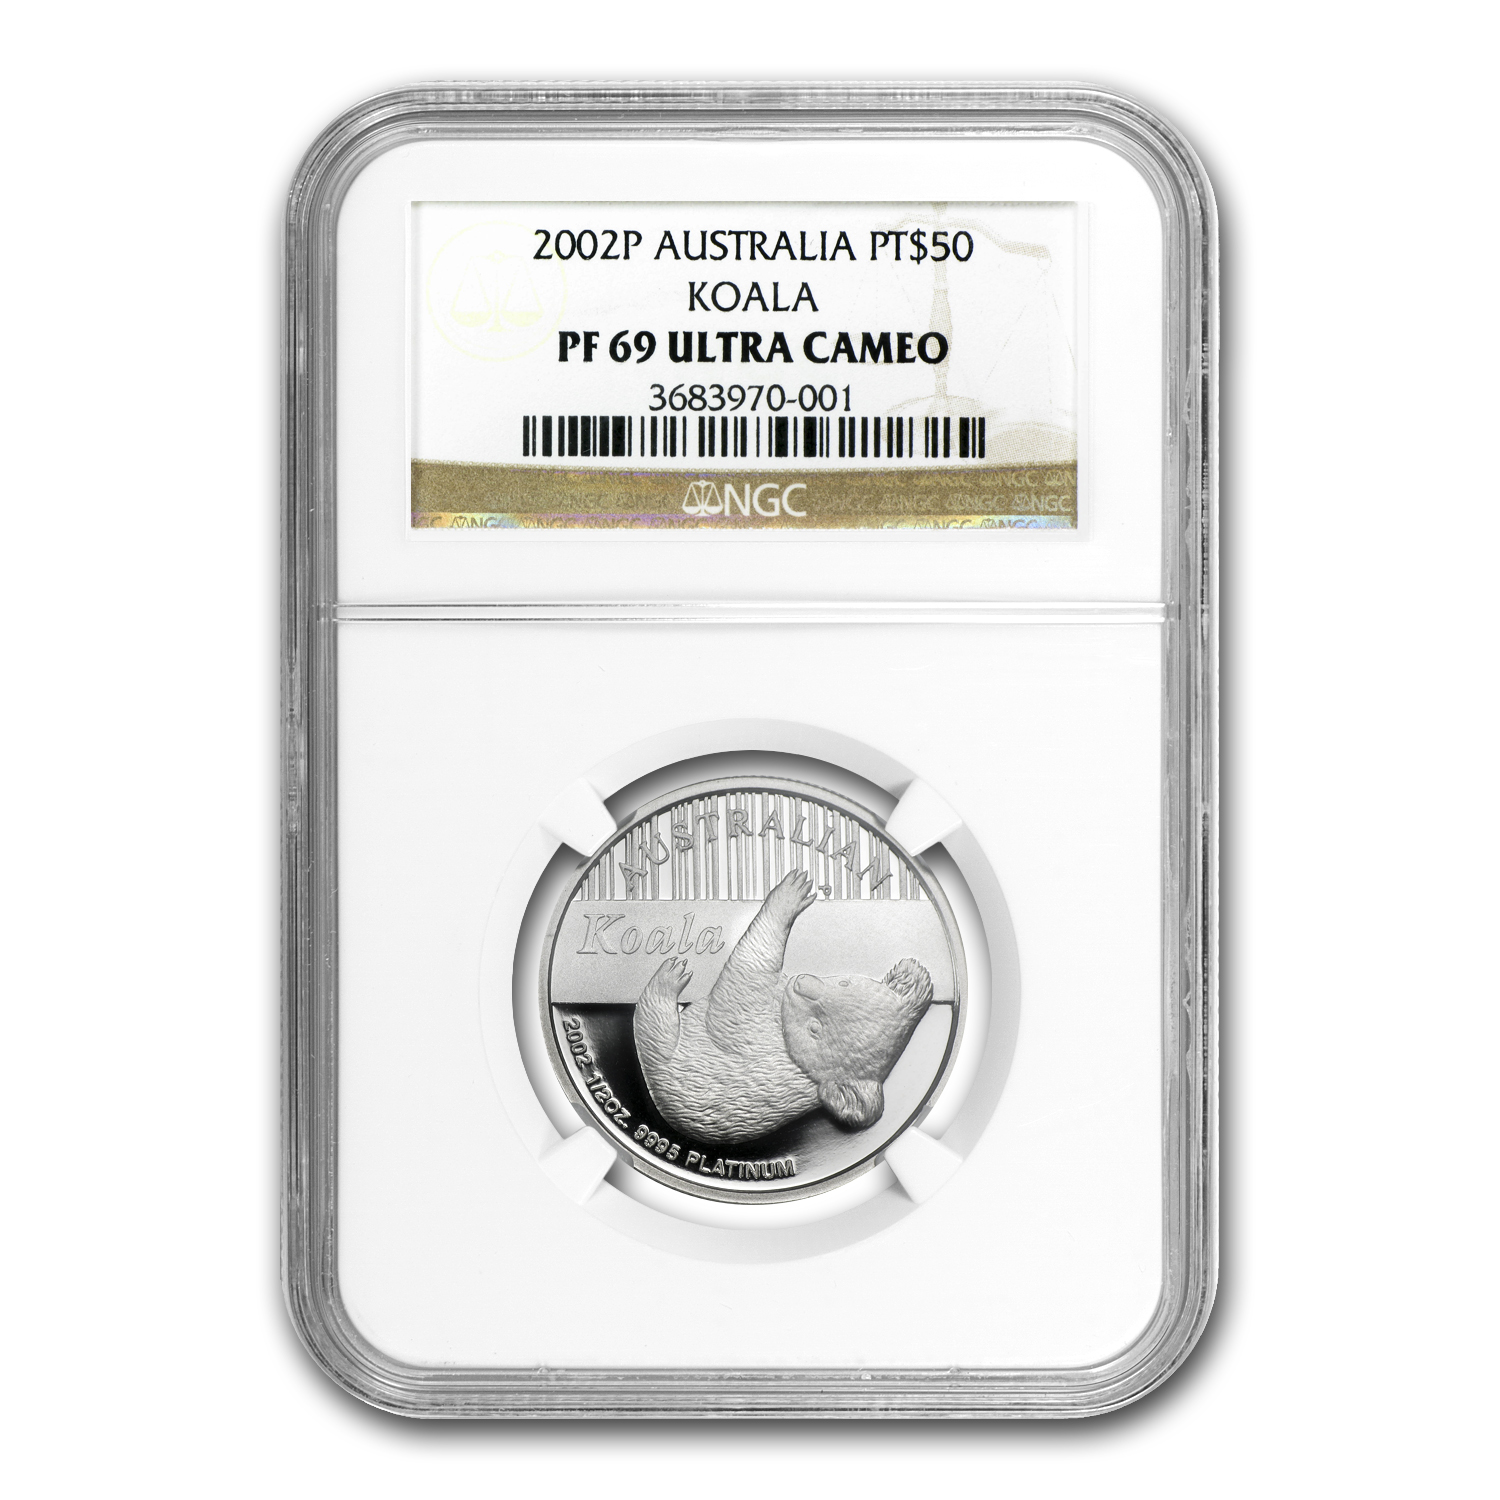 2002 Australia 1/2 oz Proof Platinum Koala PF-69 NGC